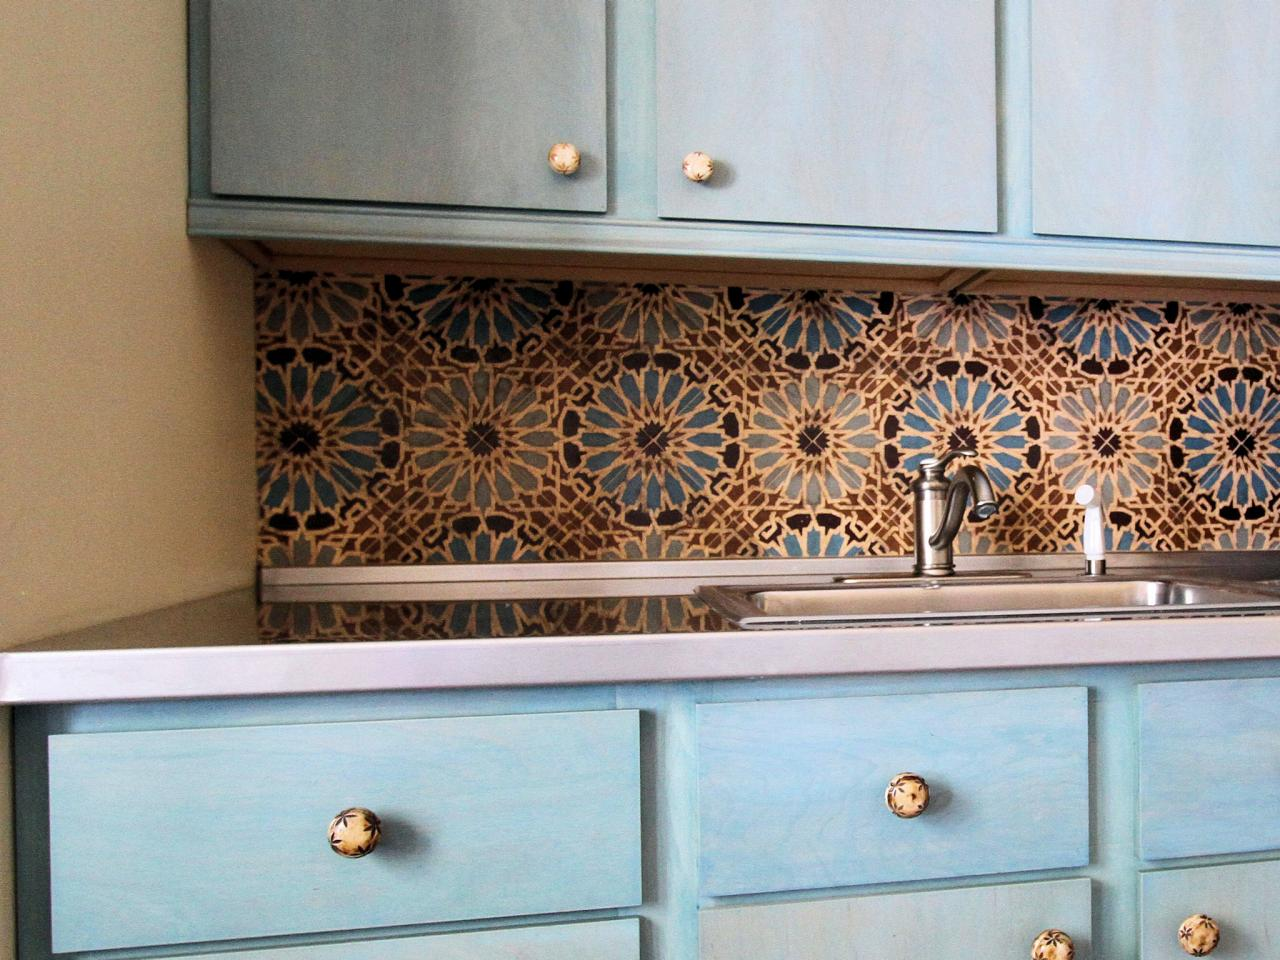 Kitchen tile backsplash ideas pictures tips from hgtv hgtv - Backsplash ideas kitchen ...